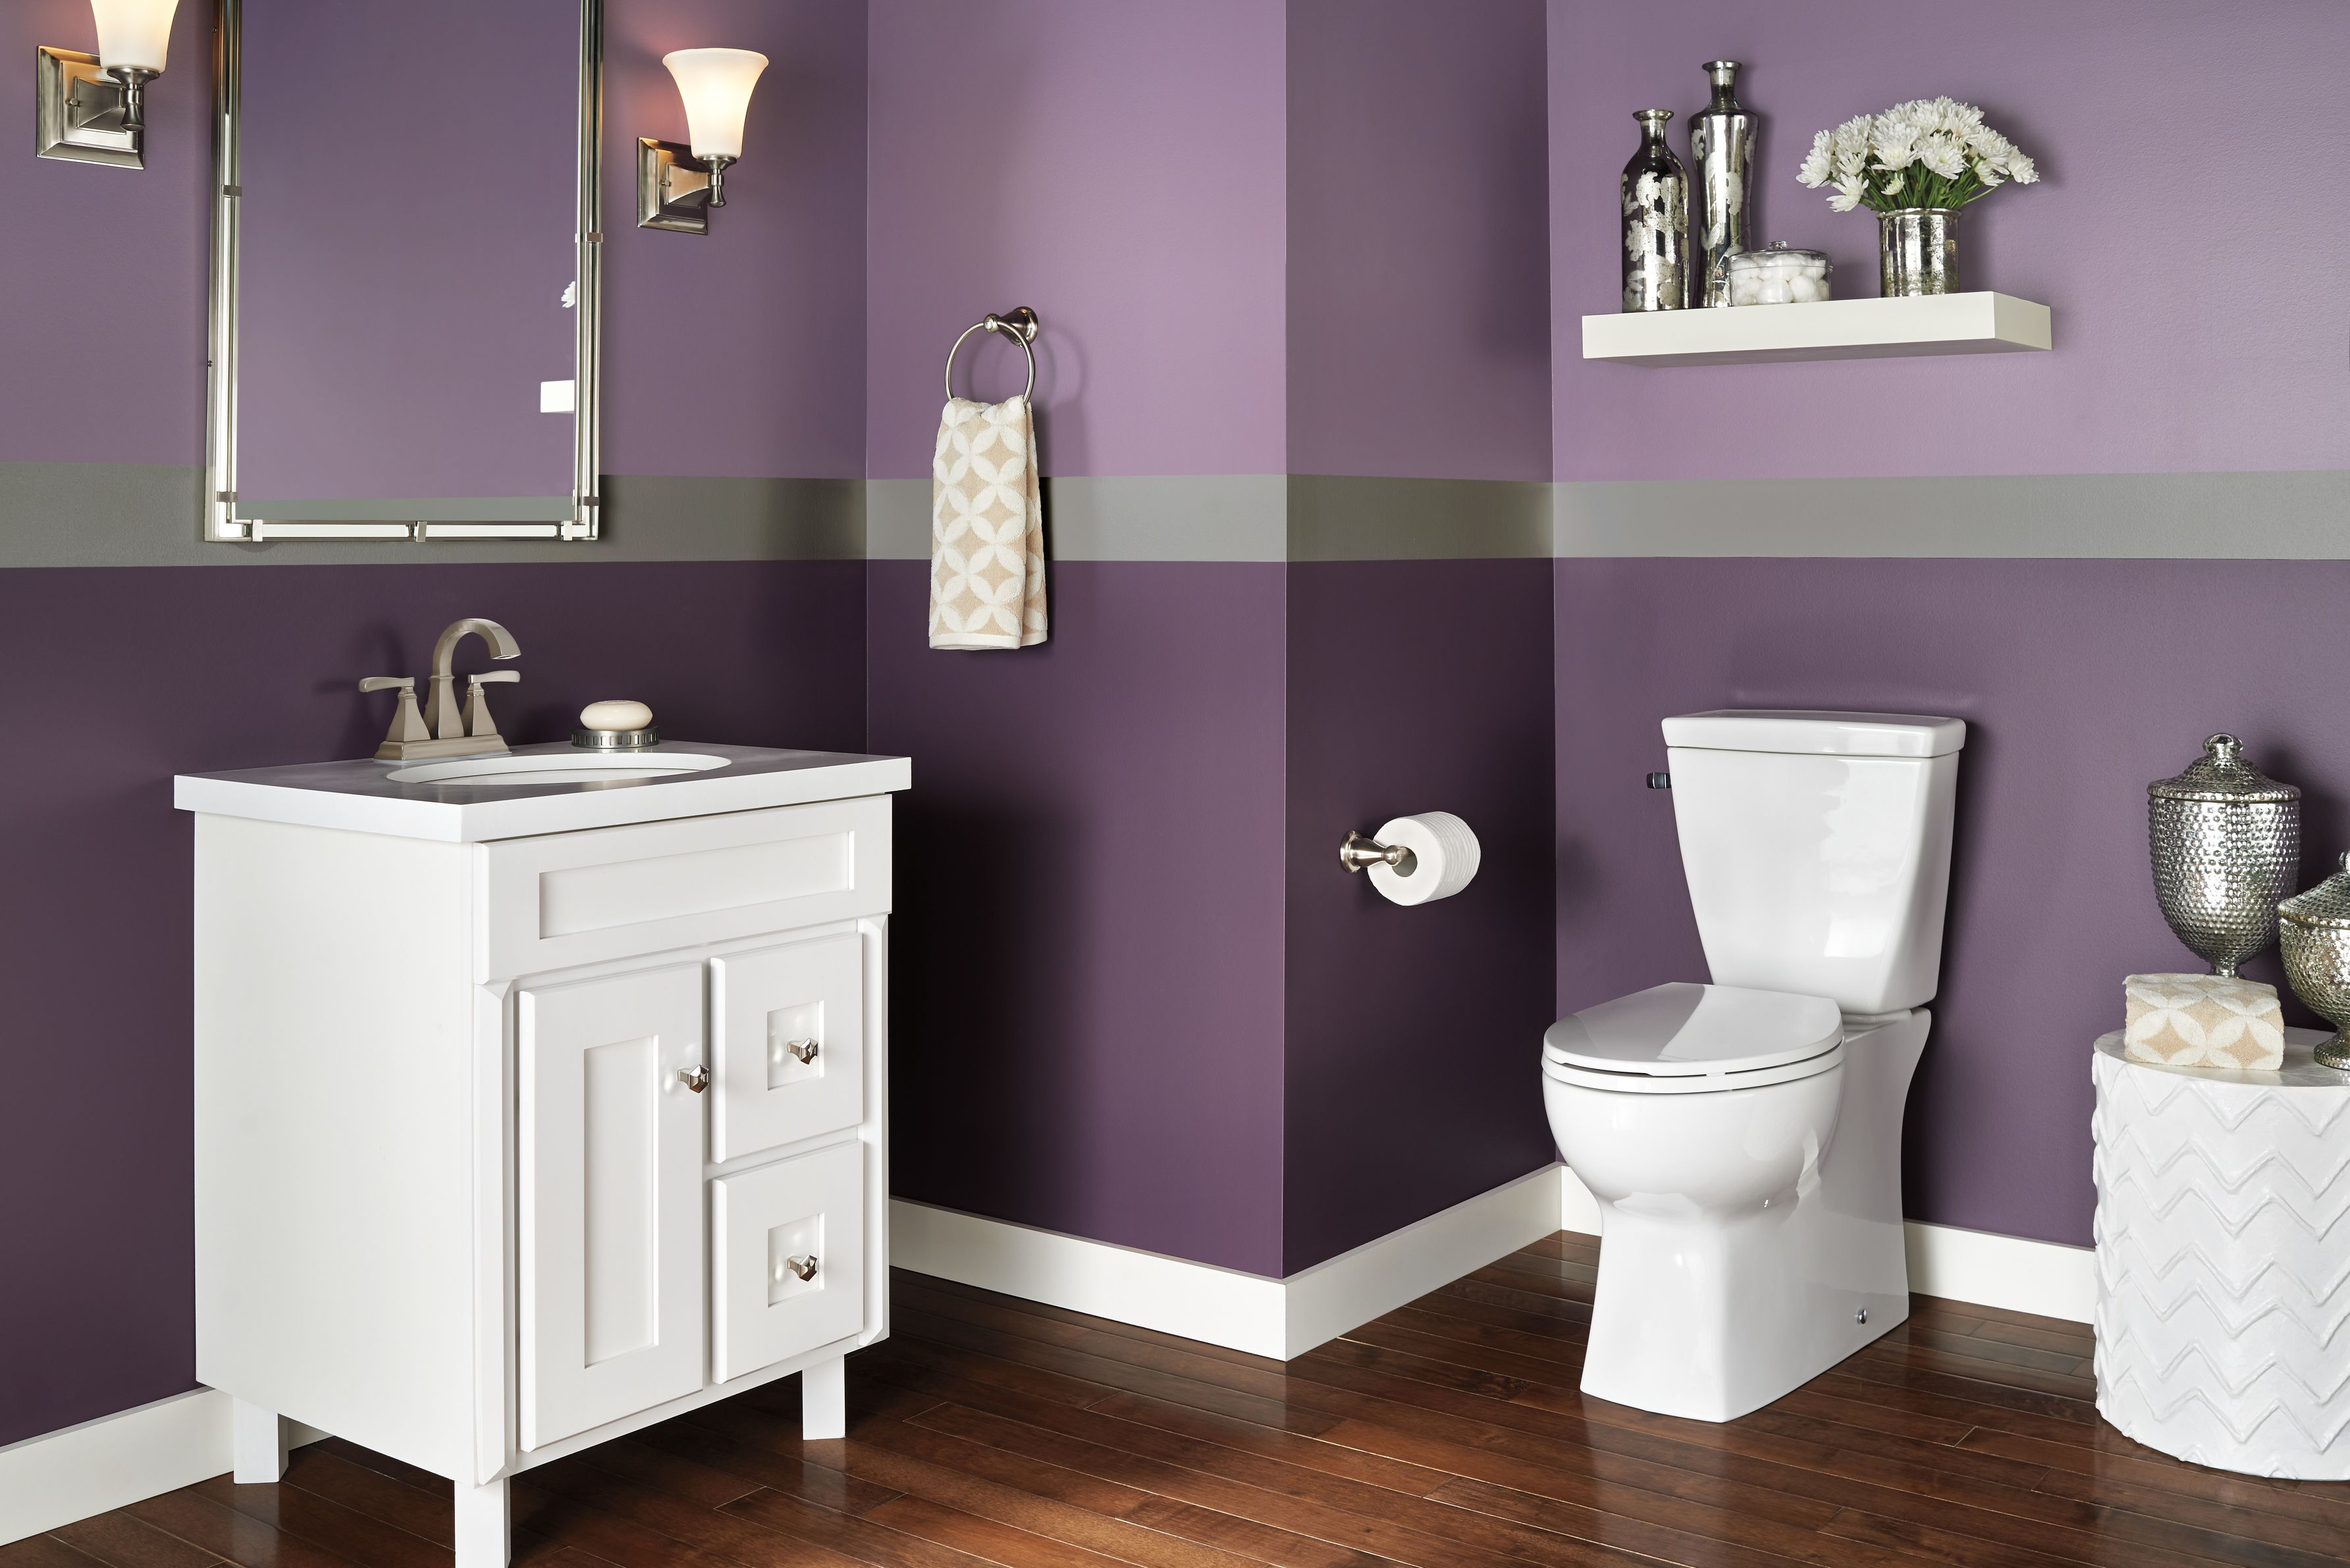 Purple paint in the bathroom adds drama to the subtle